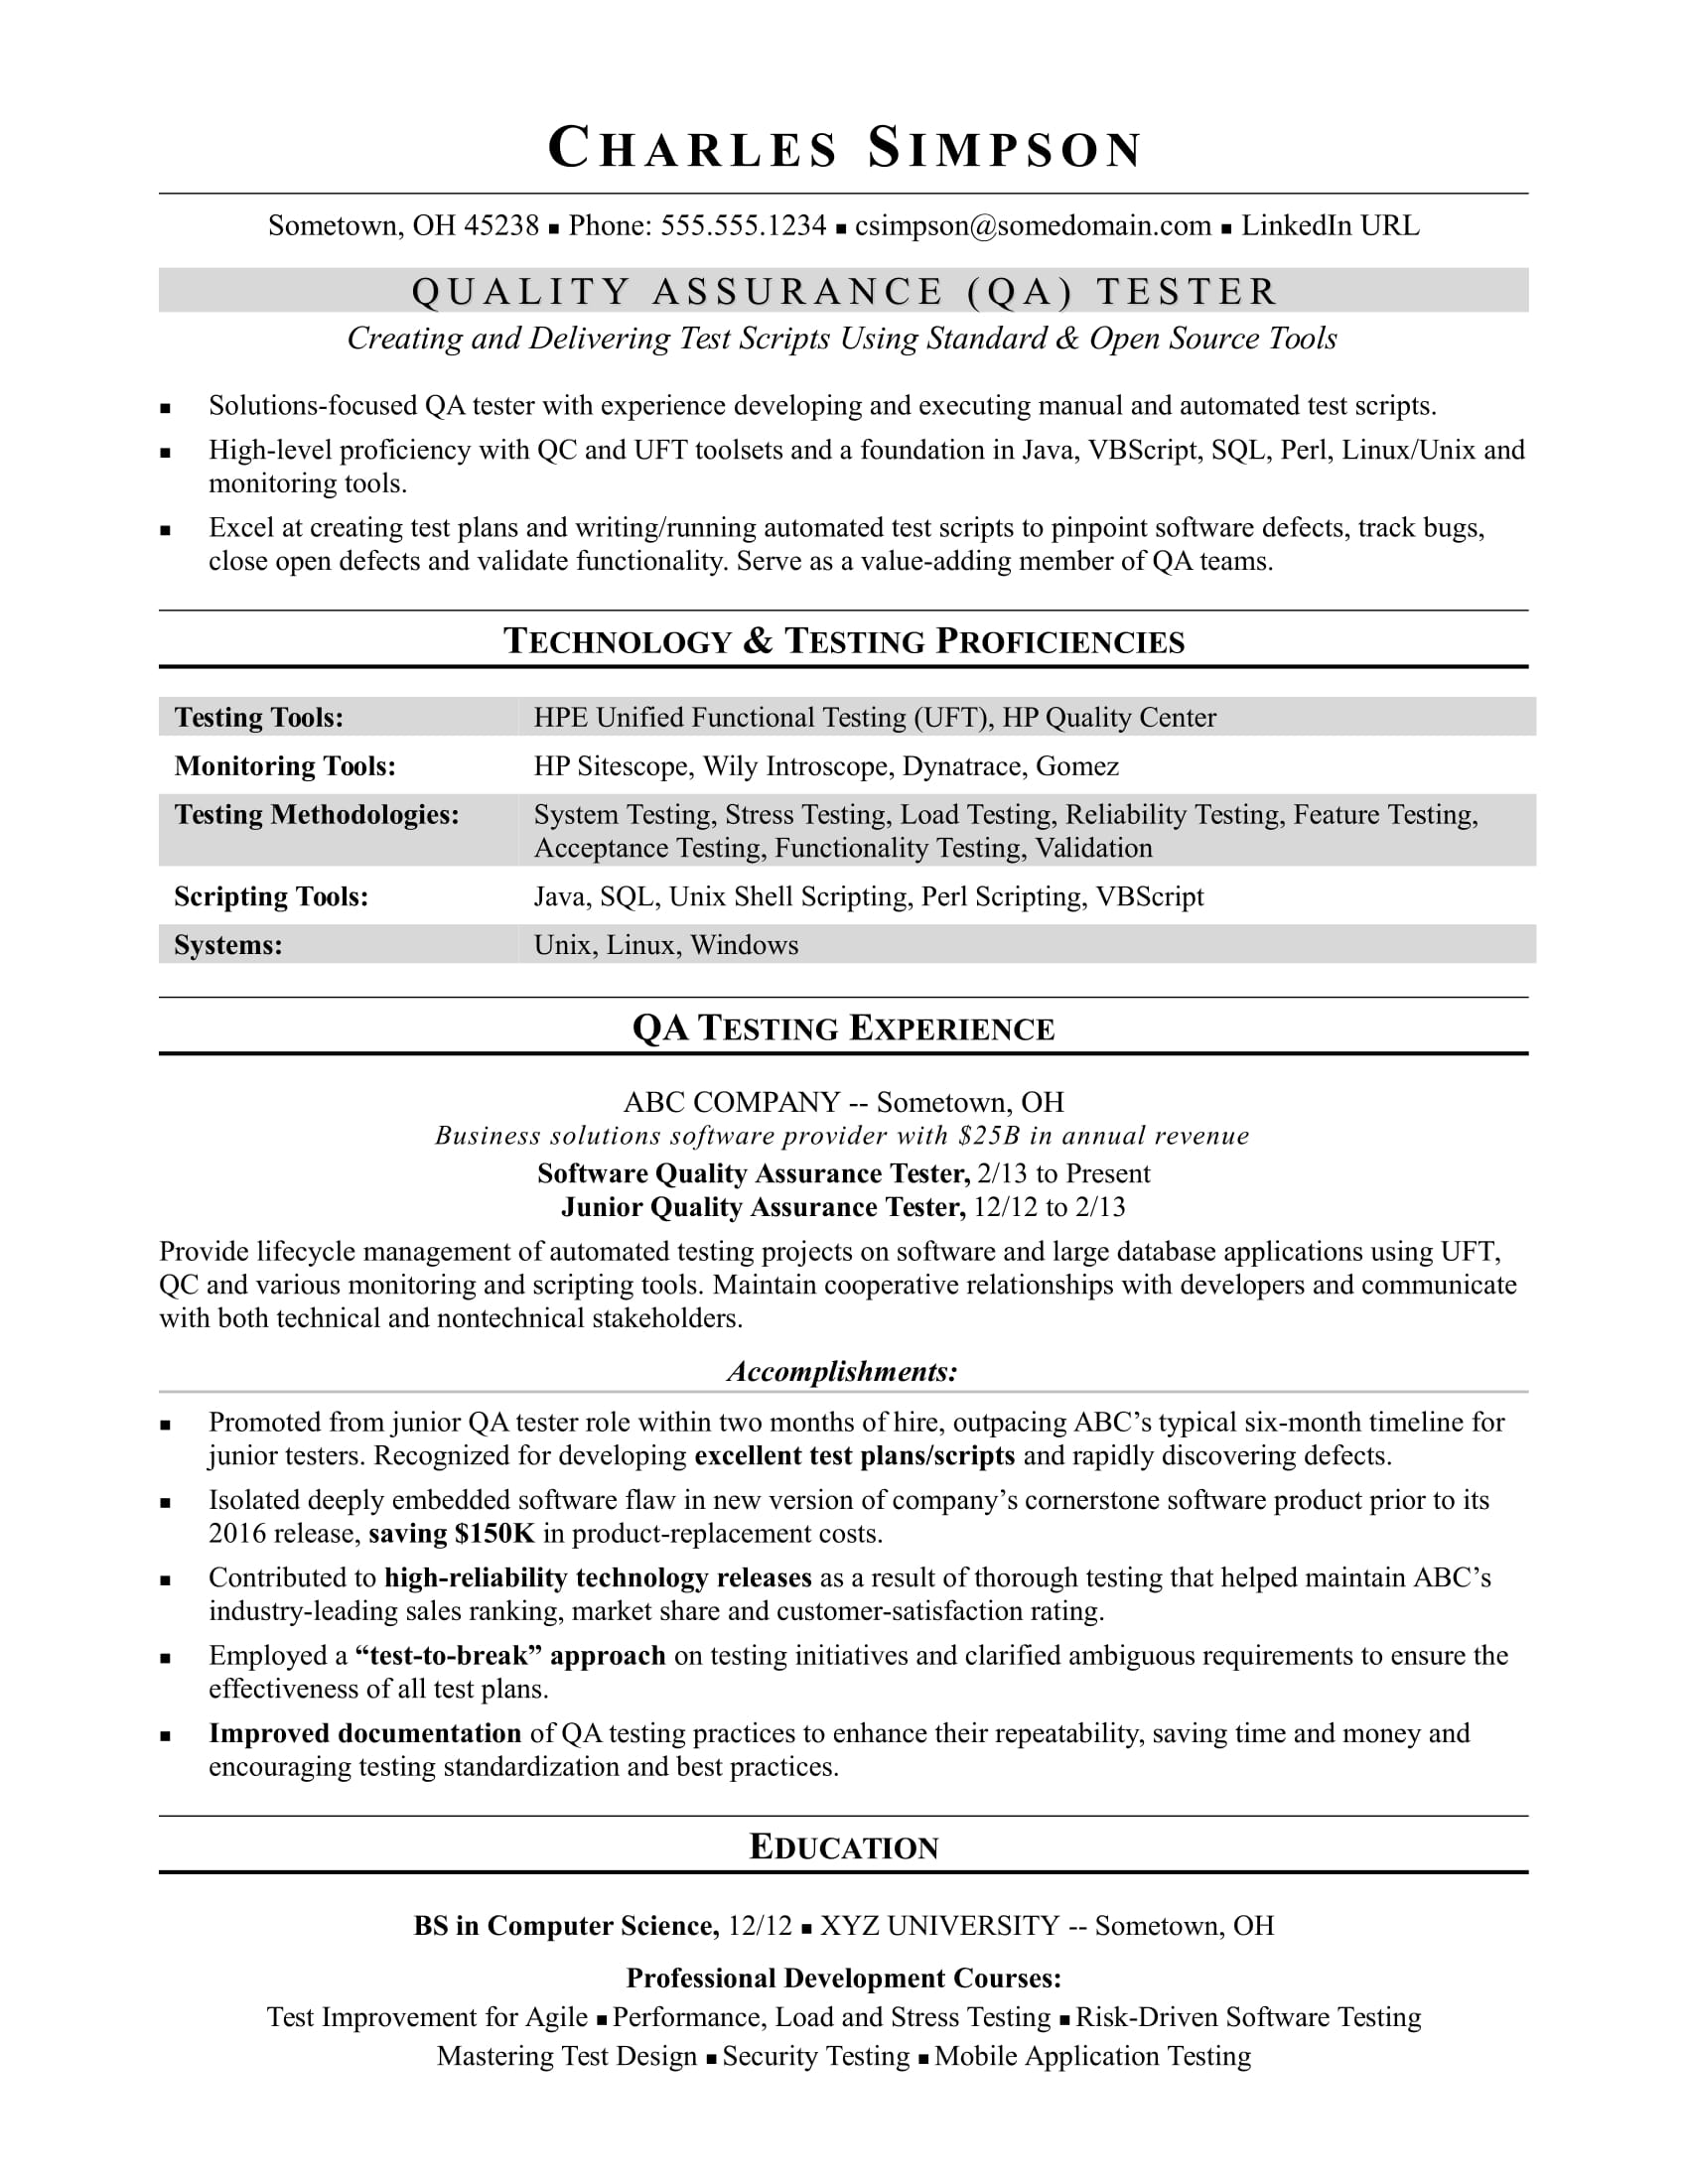 Sample resume for a midlevel qa software tester monster sample resume for a midlevel qa software tester pronofoot35fo Image collections